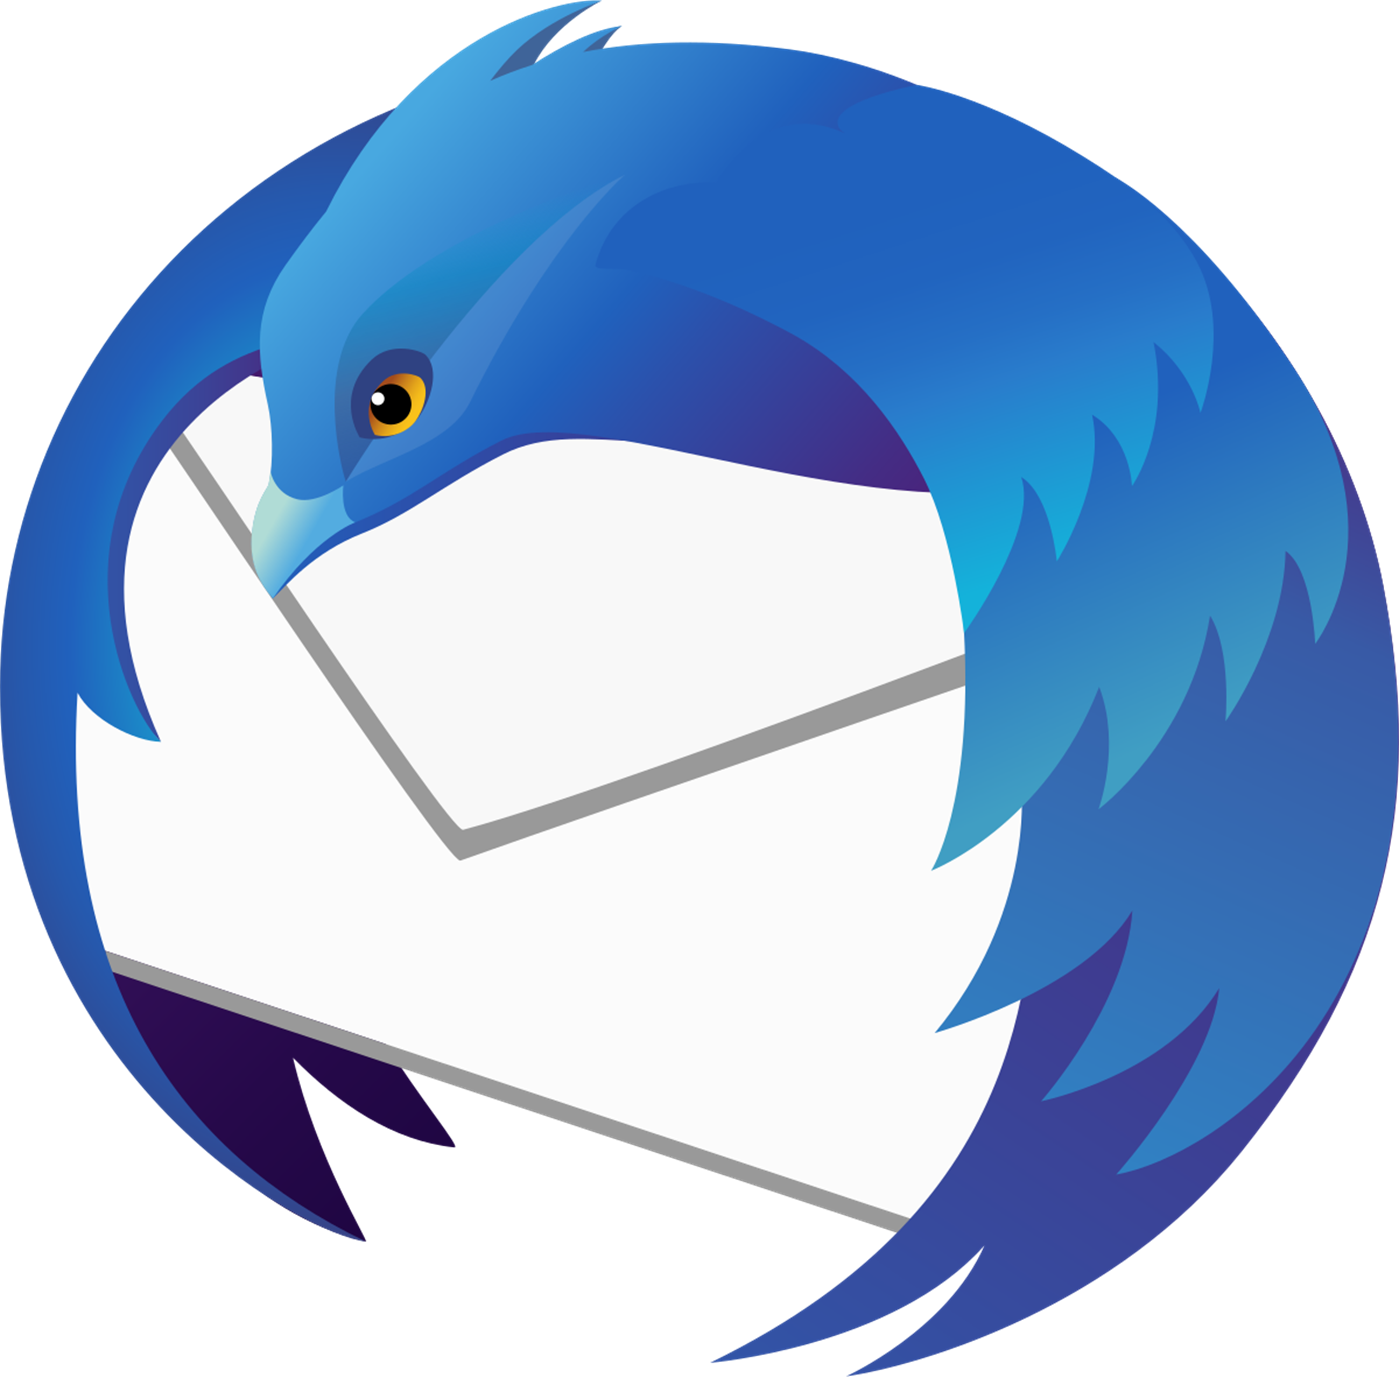 Download-Thunderbird-Windows-10-Microsoft-Store